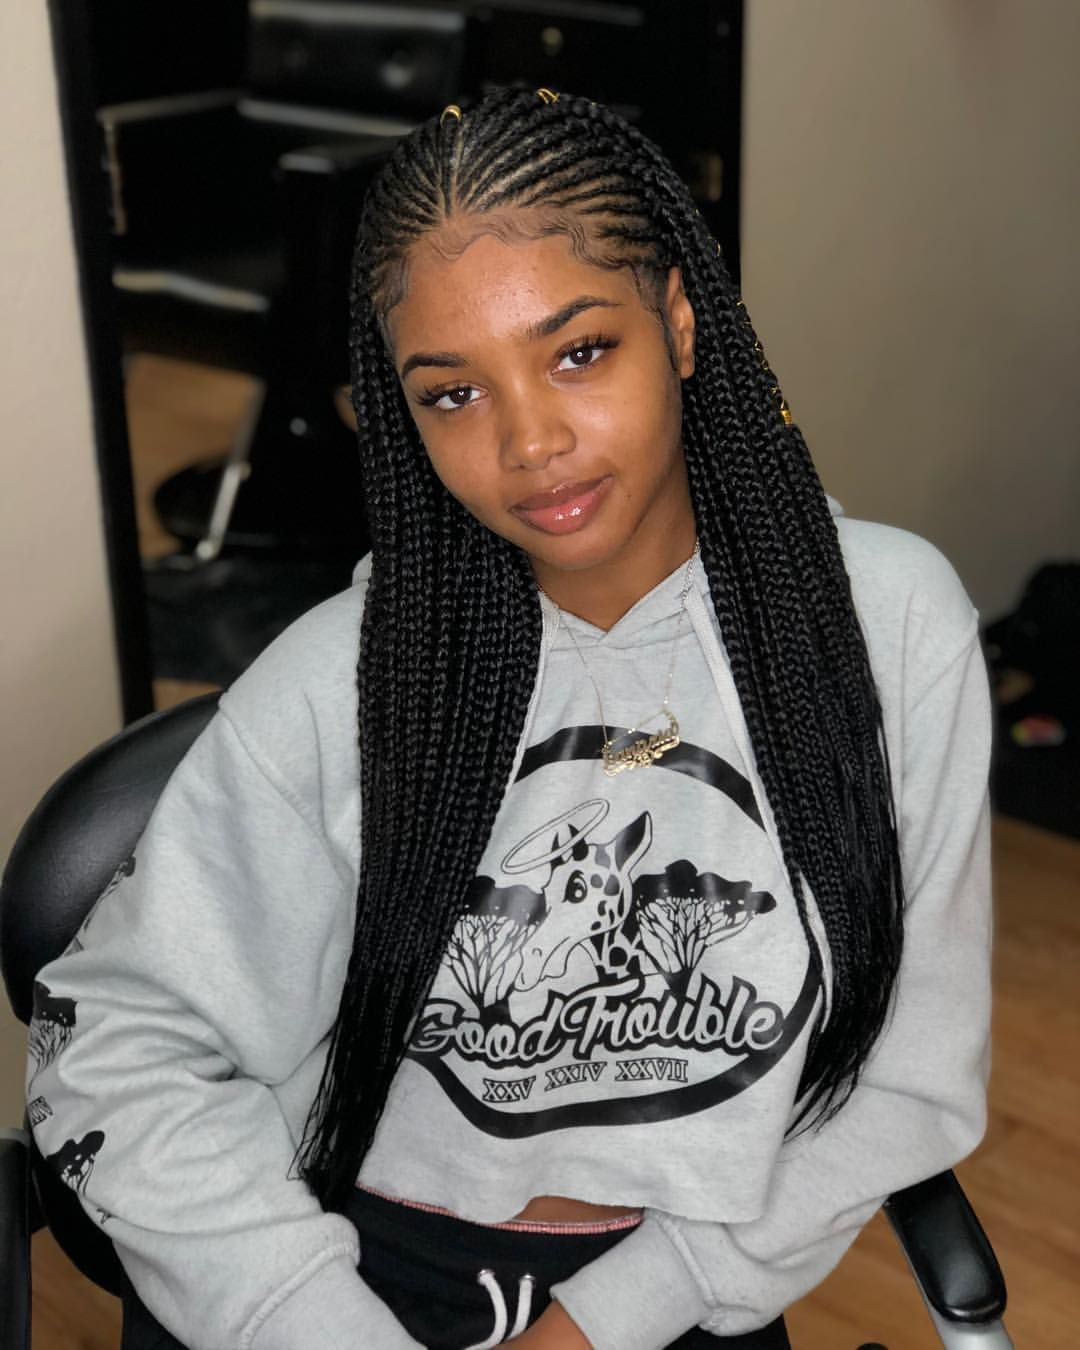 41 Best Black Braided Hairstyles To Stand Out In 2020 African Hair Braiding Styles Braids For Black Hair Braided Hairstyles Easy